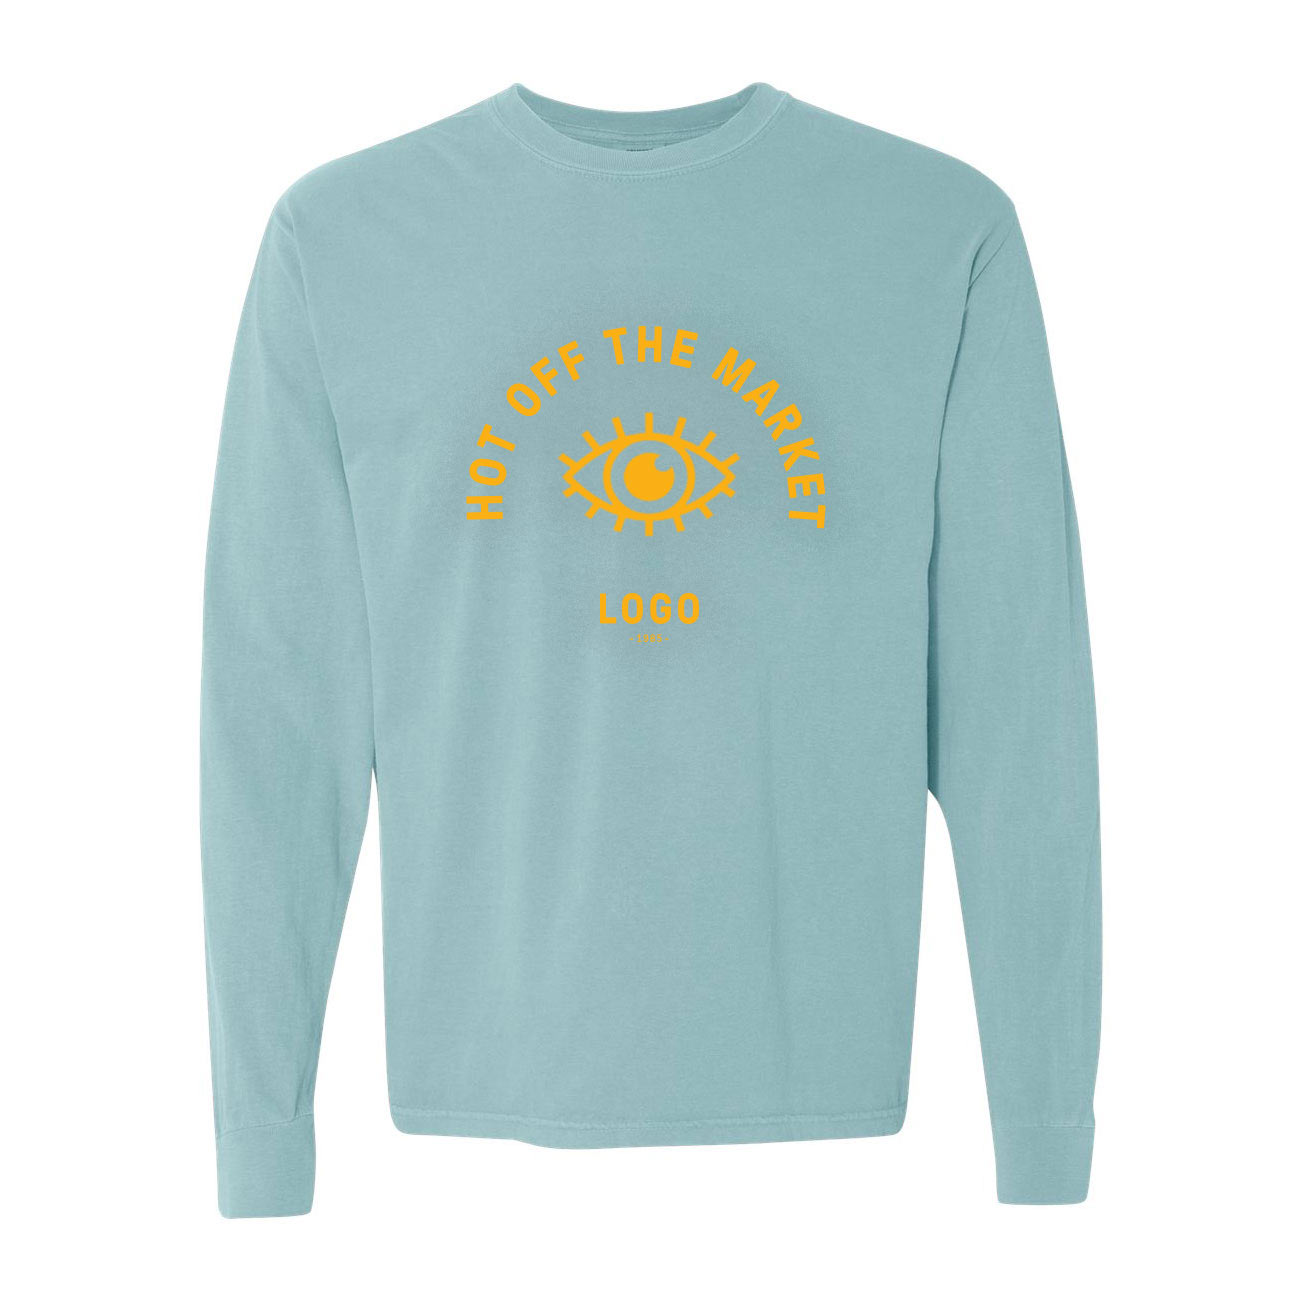 122724 garment dyed heavyweight long sleeve tee one color one location screen